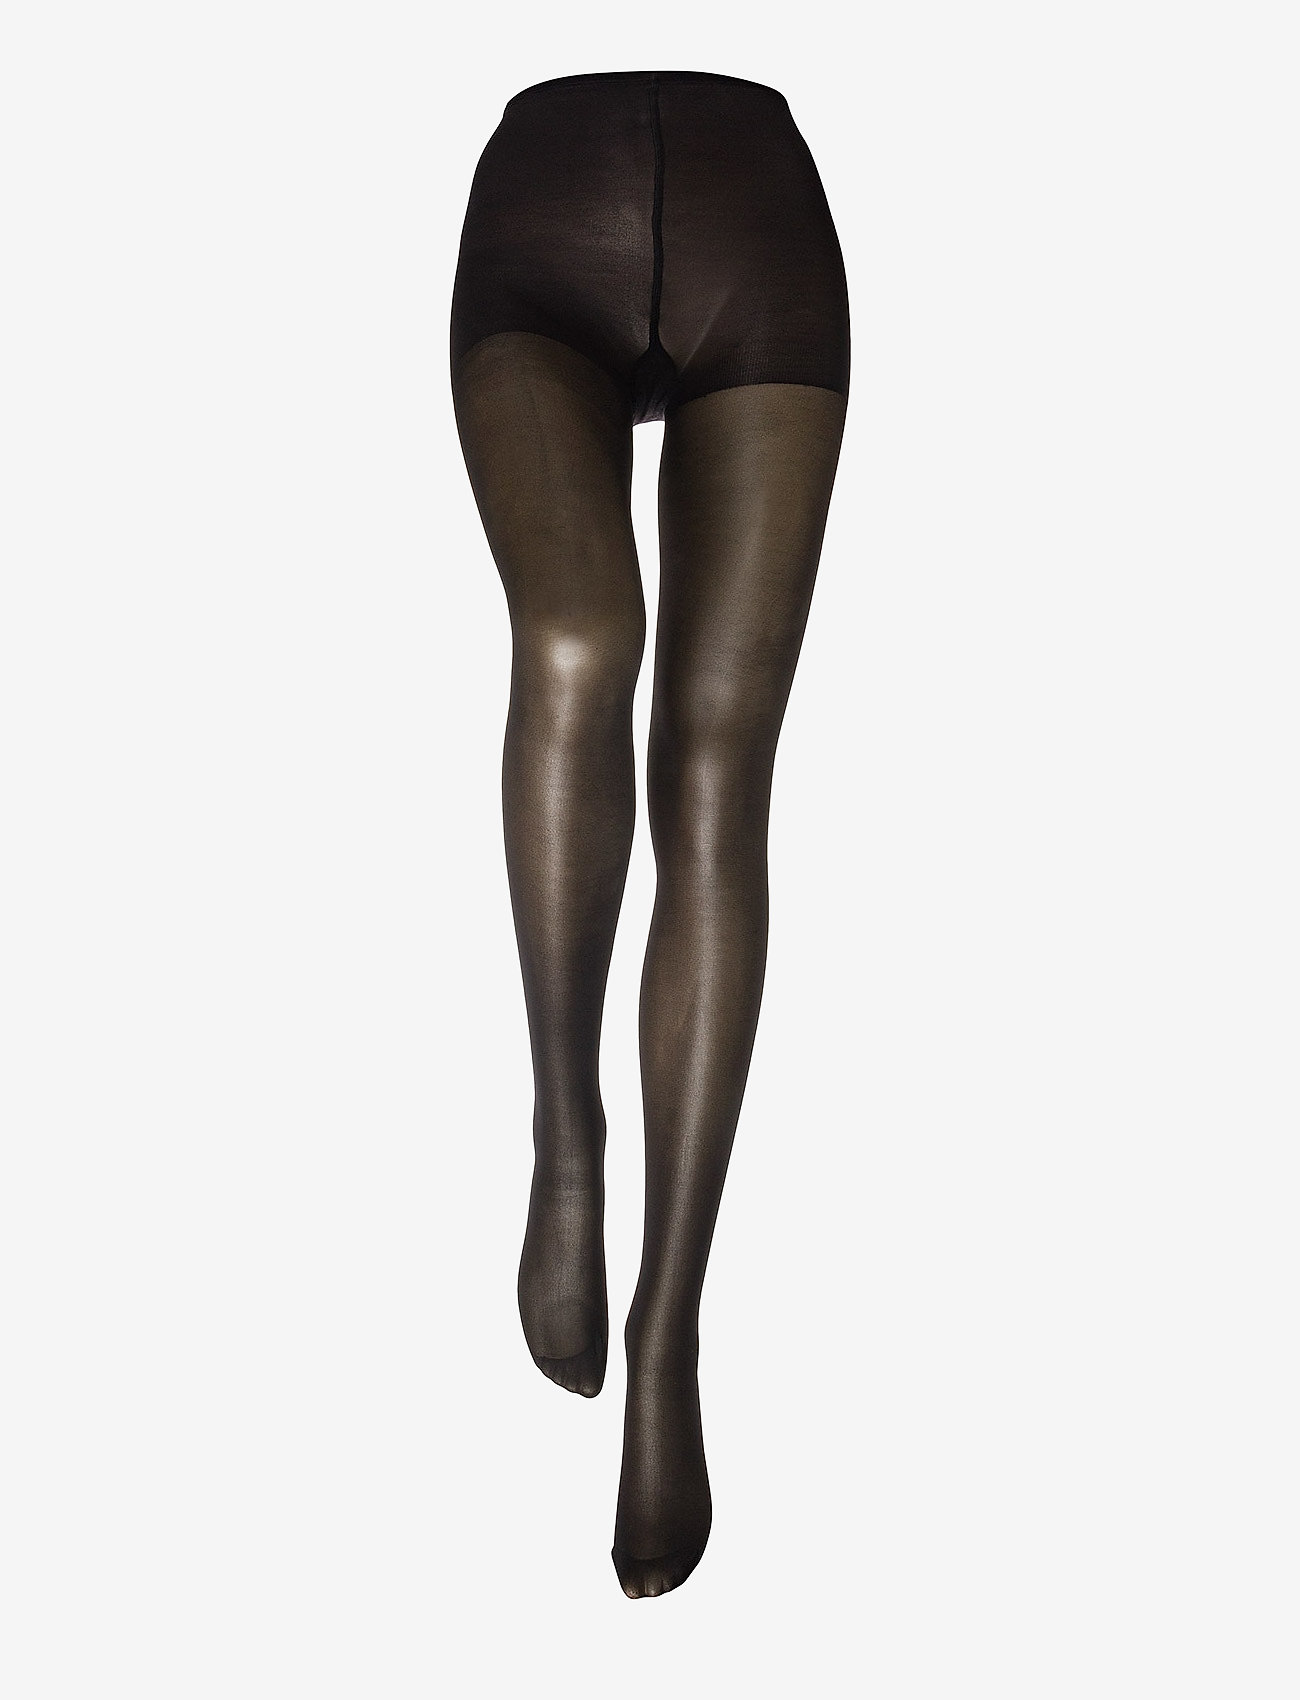 Vogue - Ladies den pantyhose, Support 40den - basic - black - 1